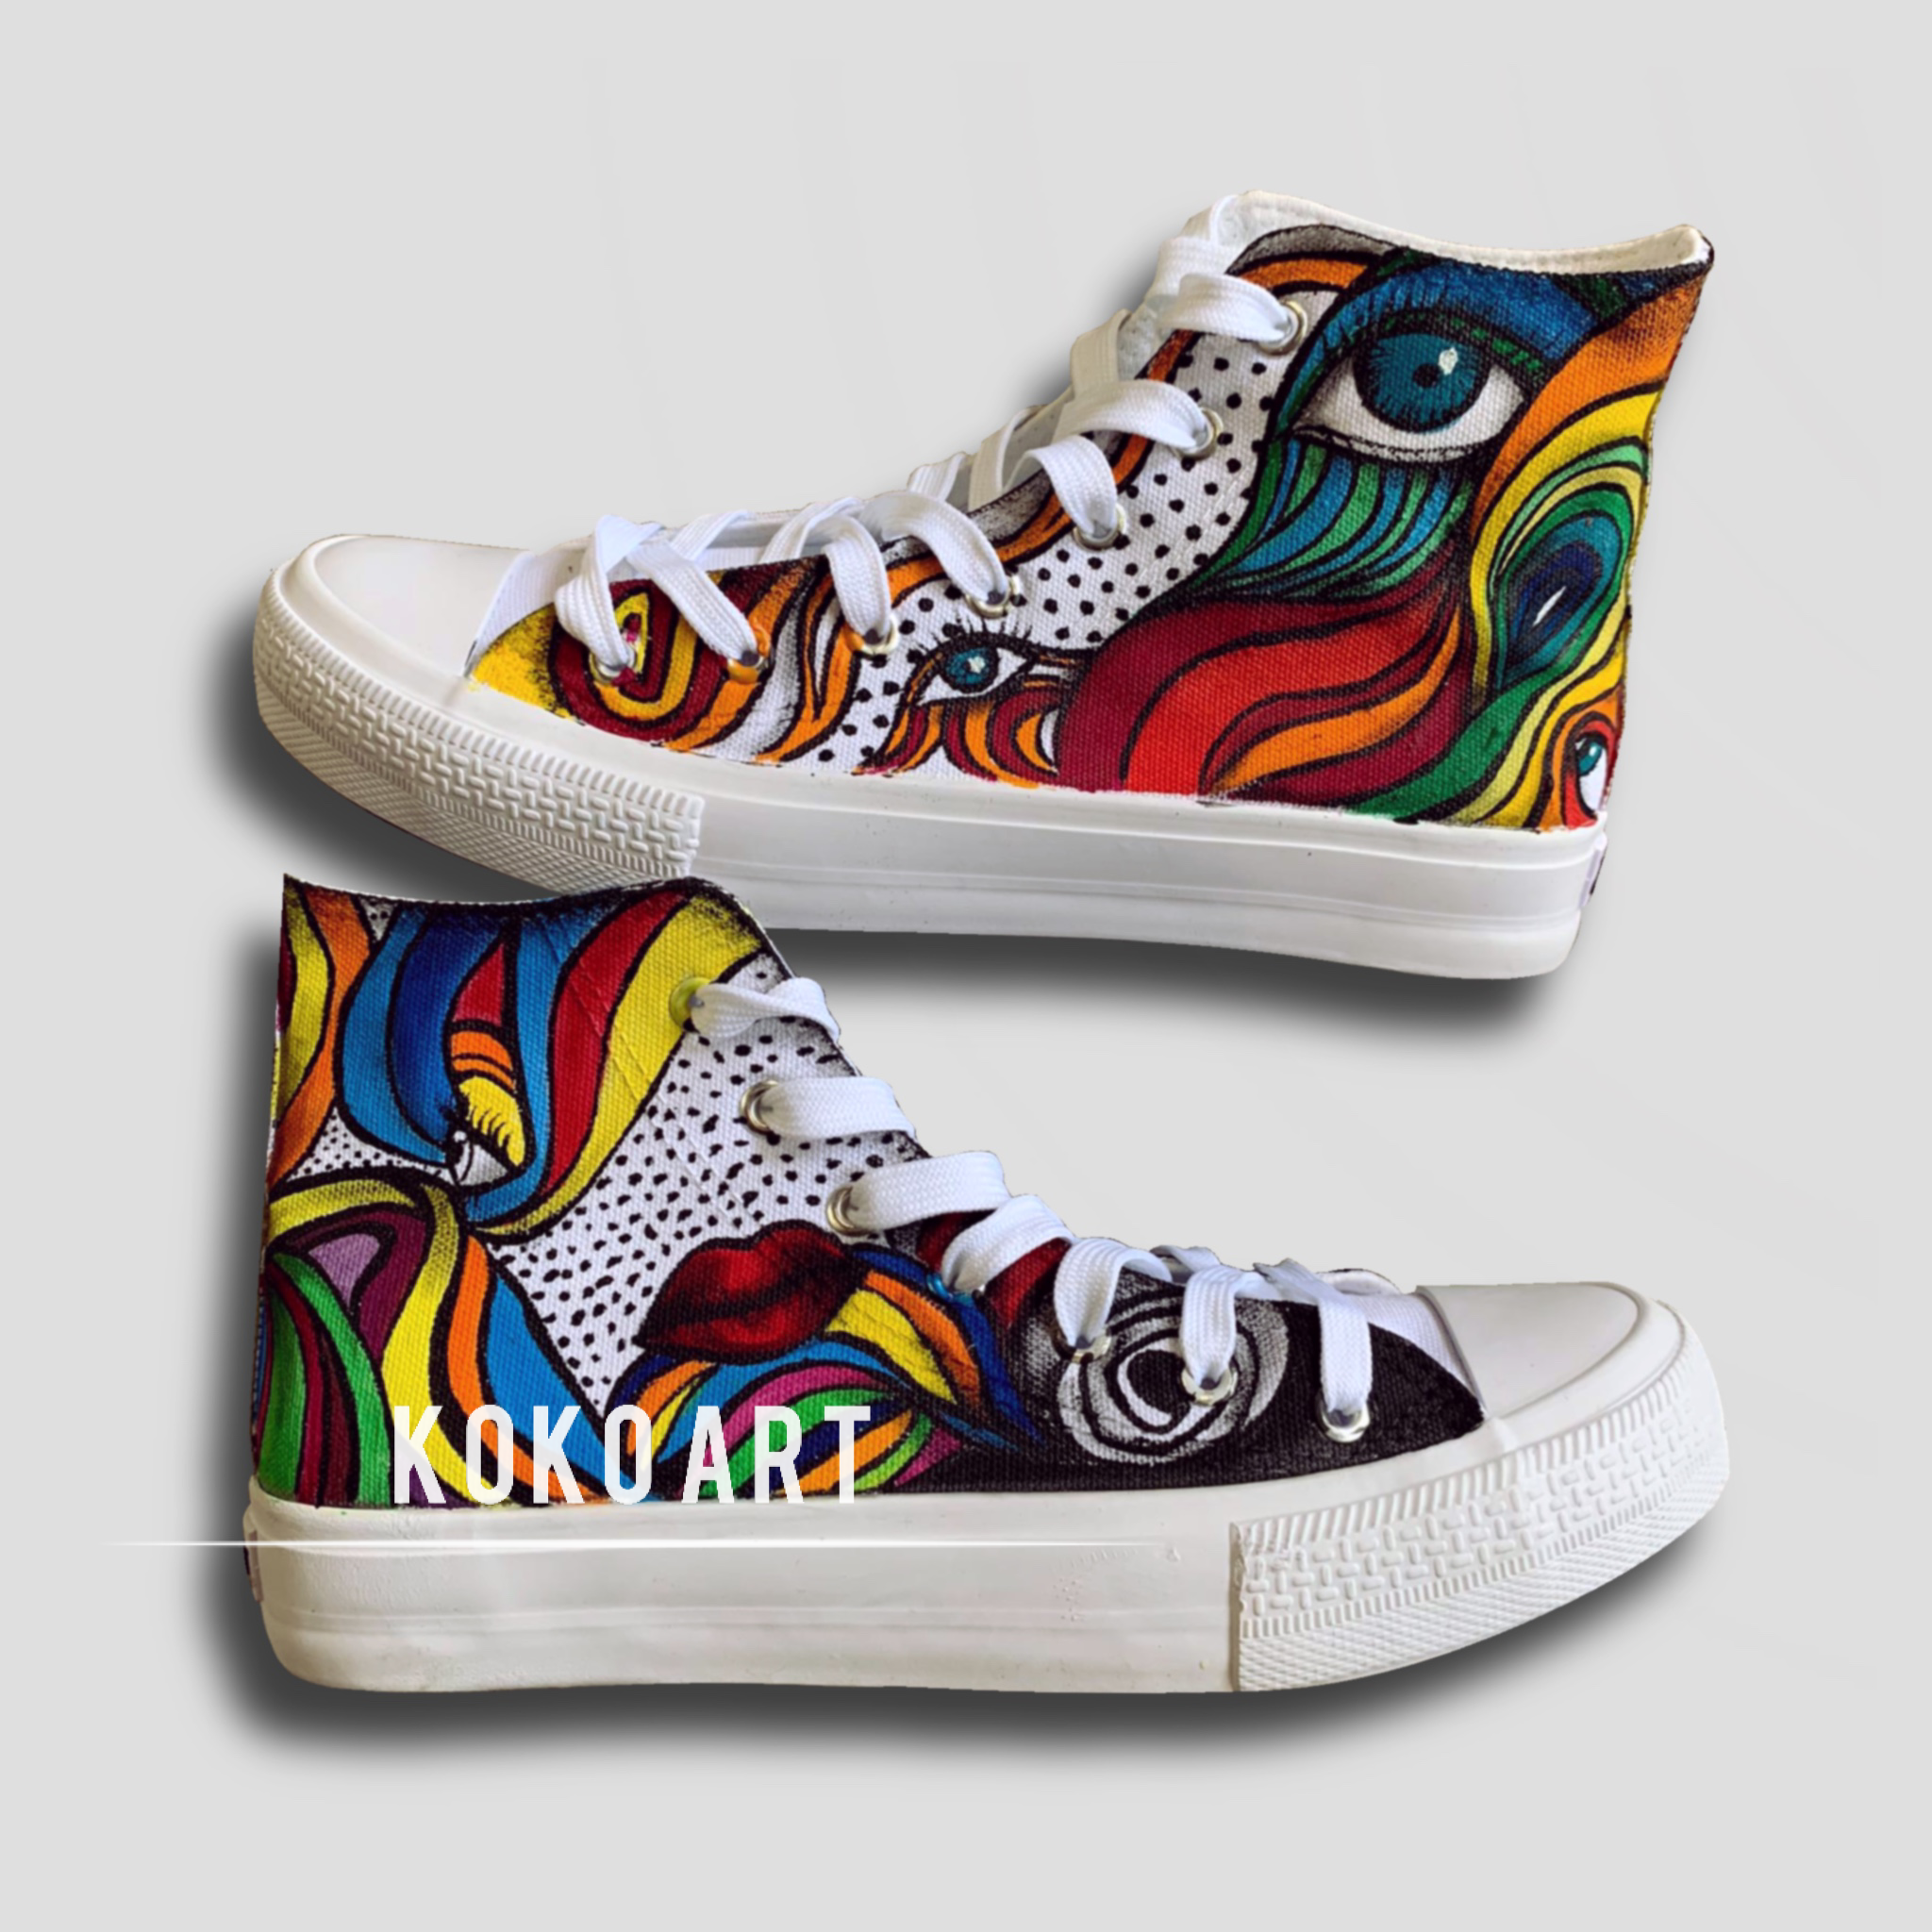 Art - Adults - Shoes